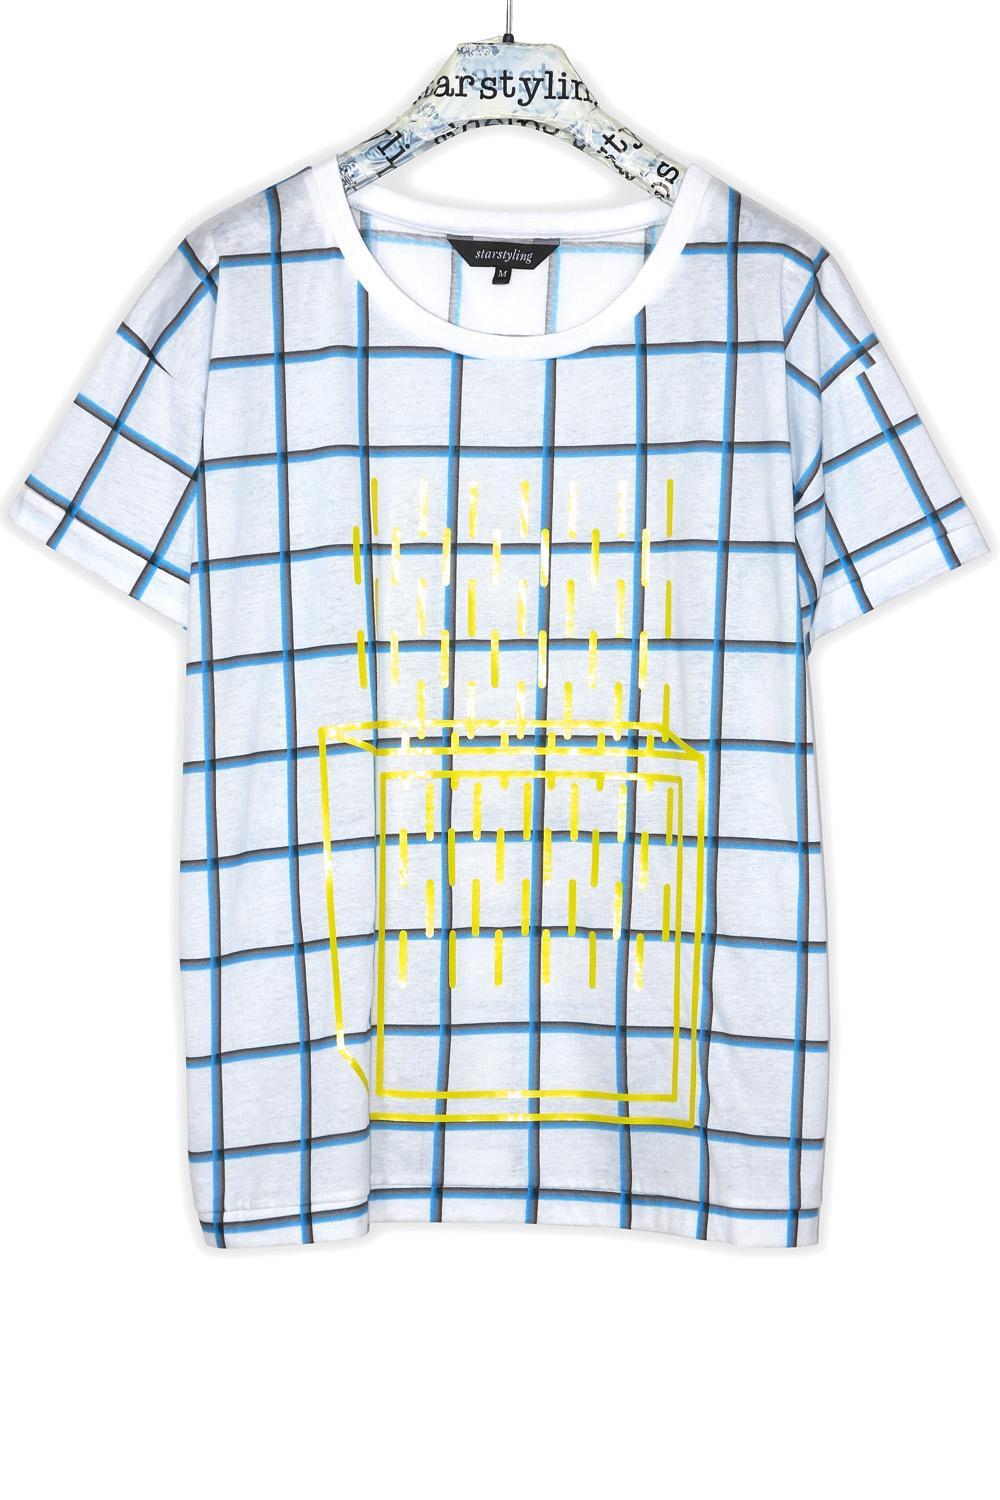 TOASTER GRID T-SHIRT